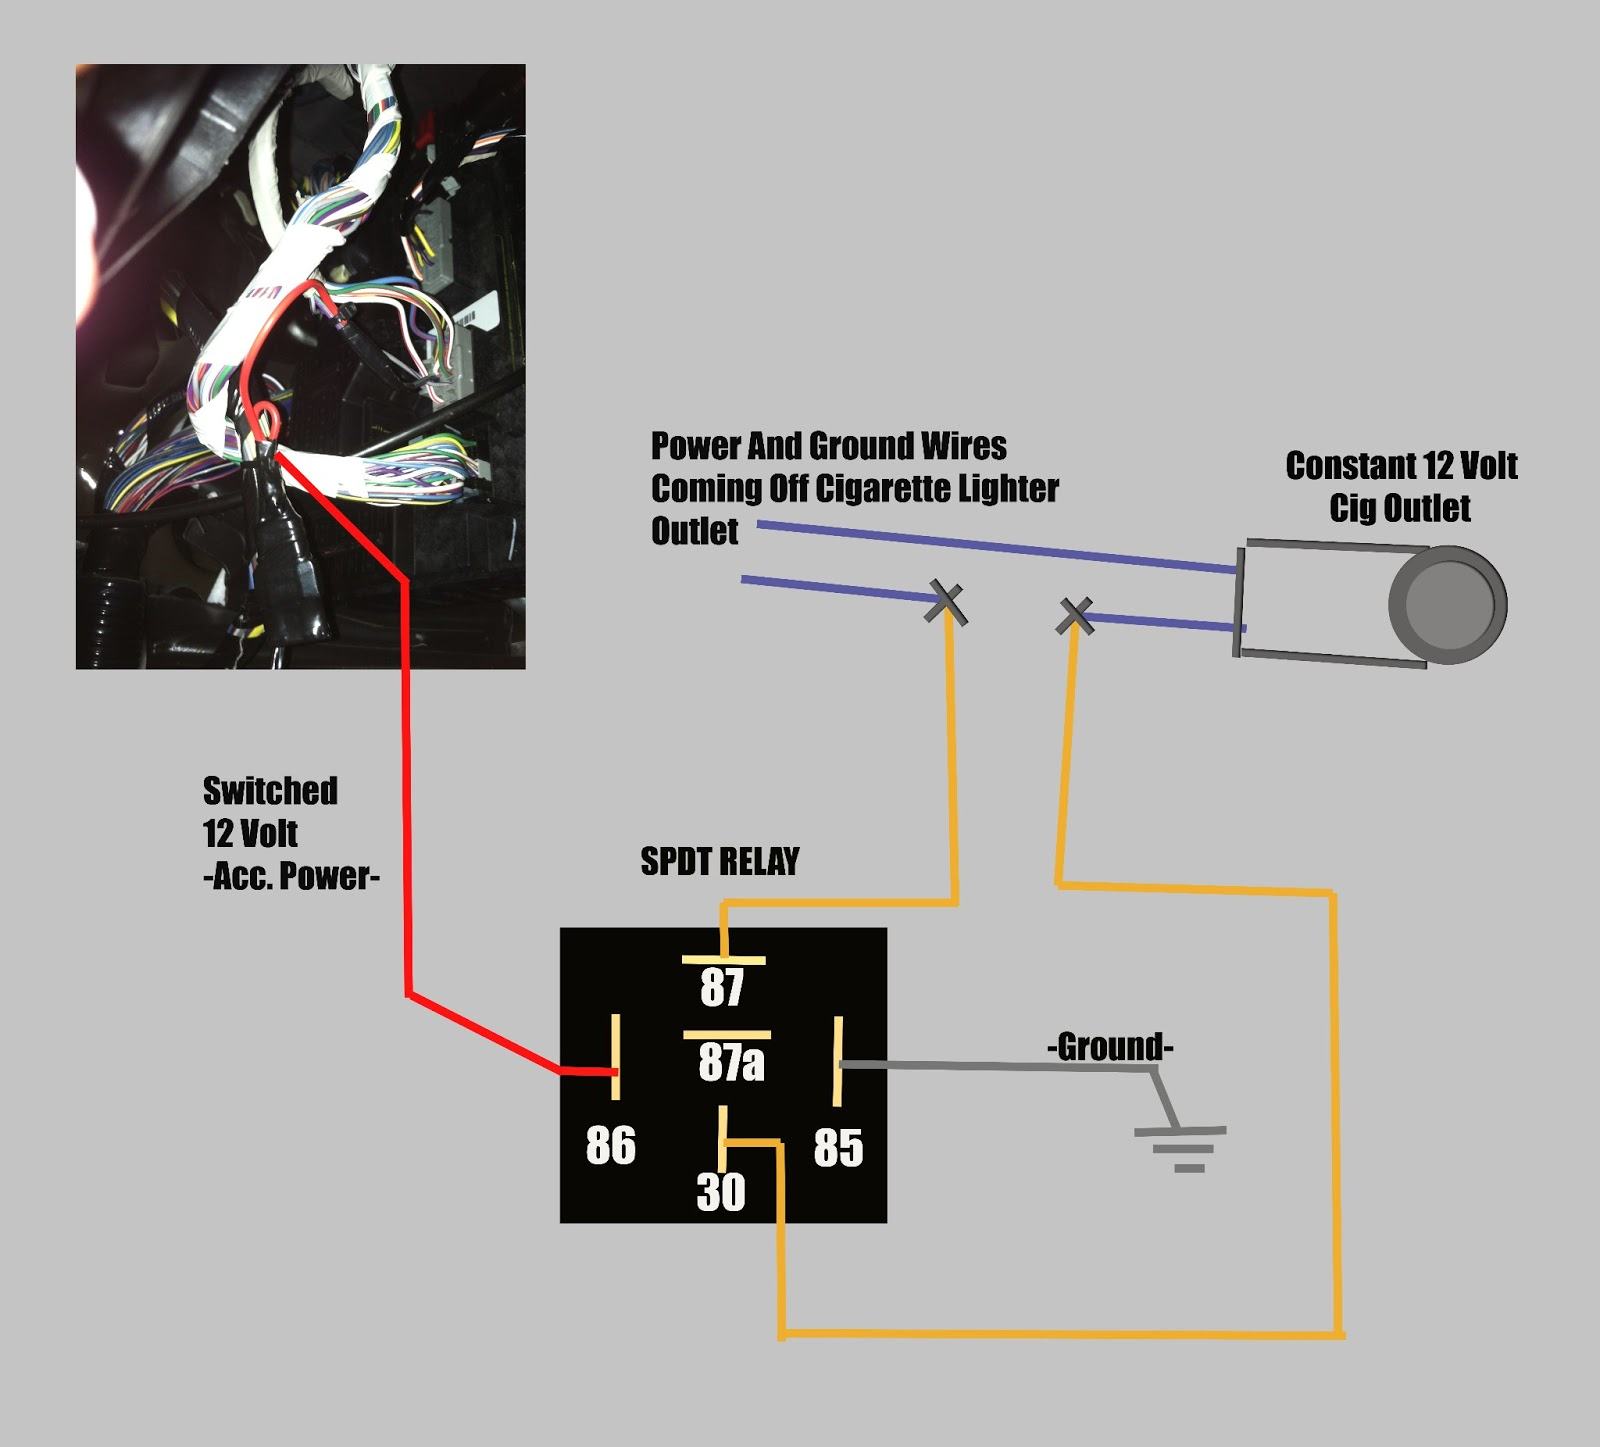 Constant Switch Outlet Wiring Diagram - WIRE Center •